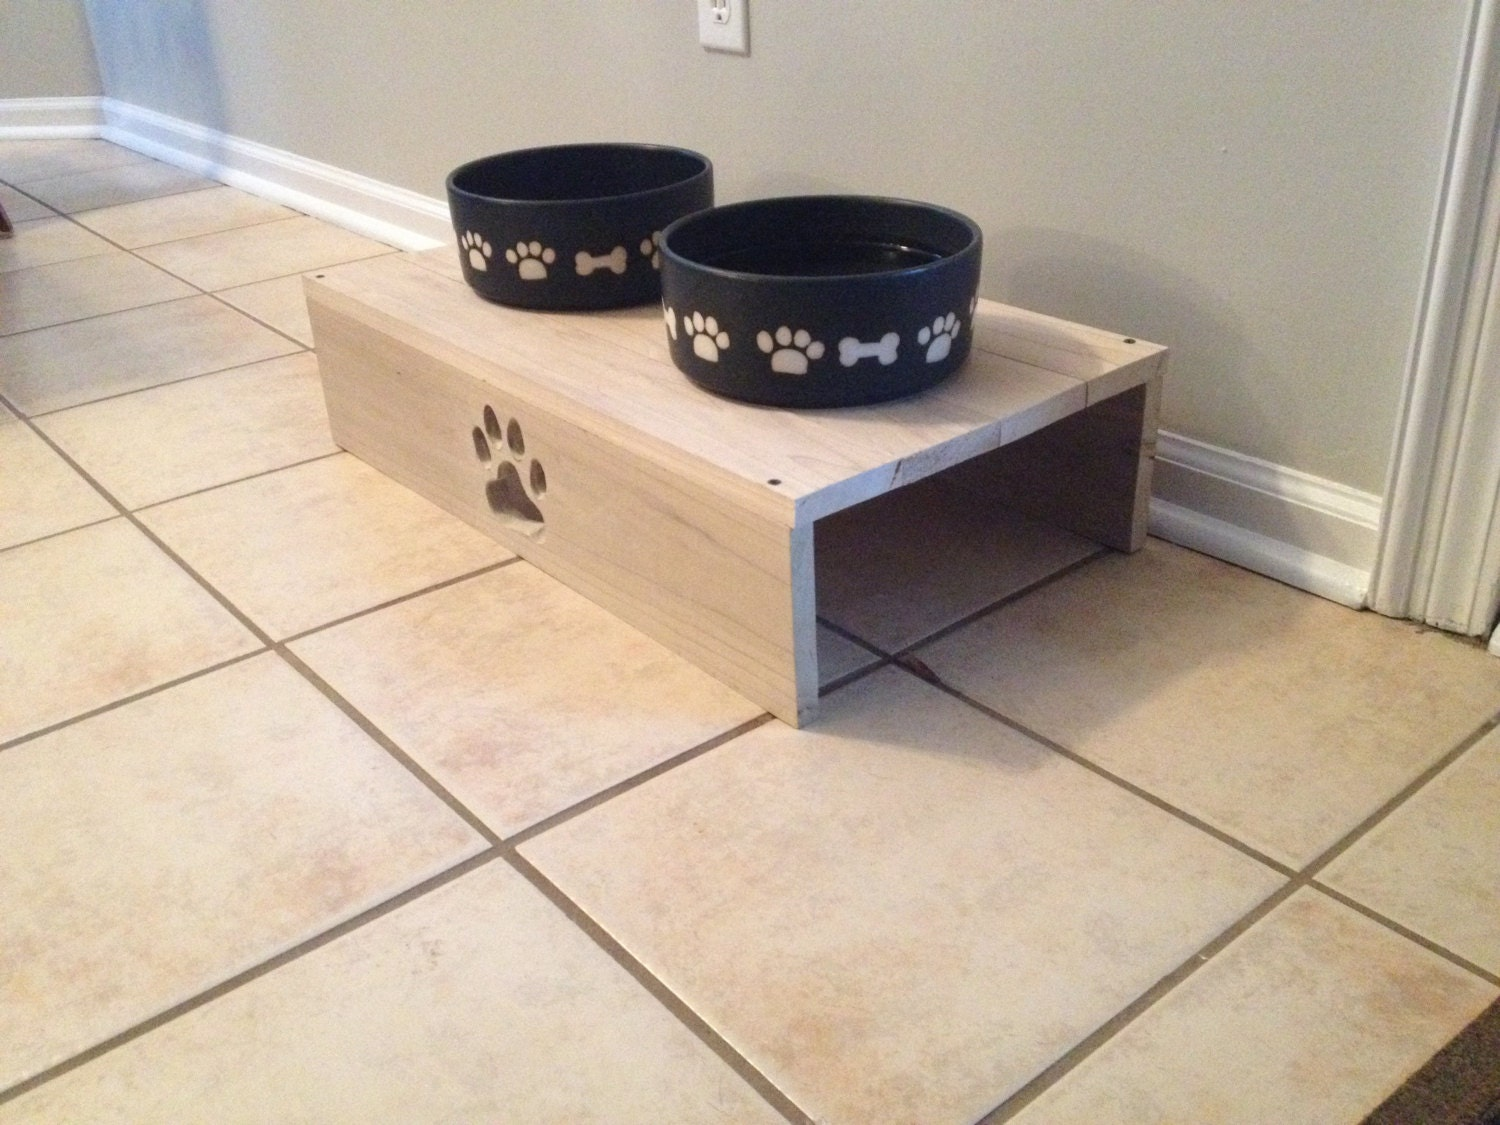 items similar to wooden dog bowl stand on etsy. Black Bedroom Furniture Sets. Home Design Ideas